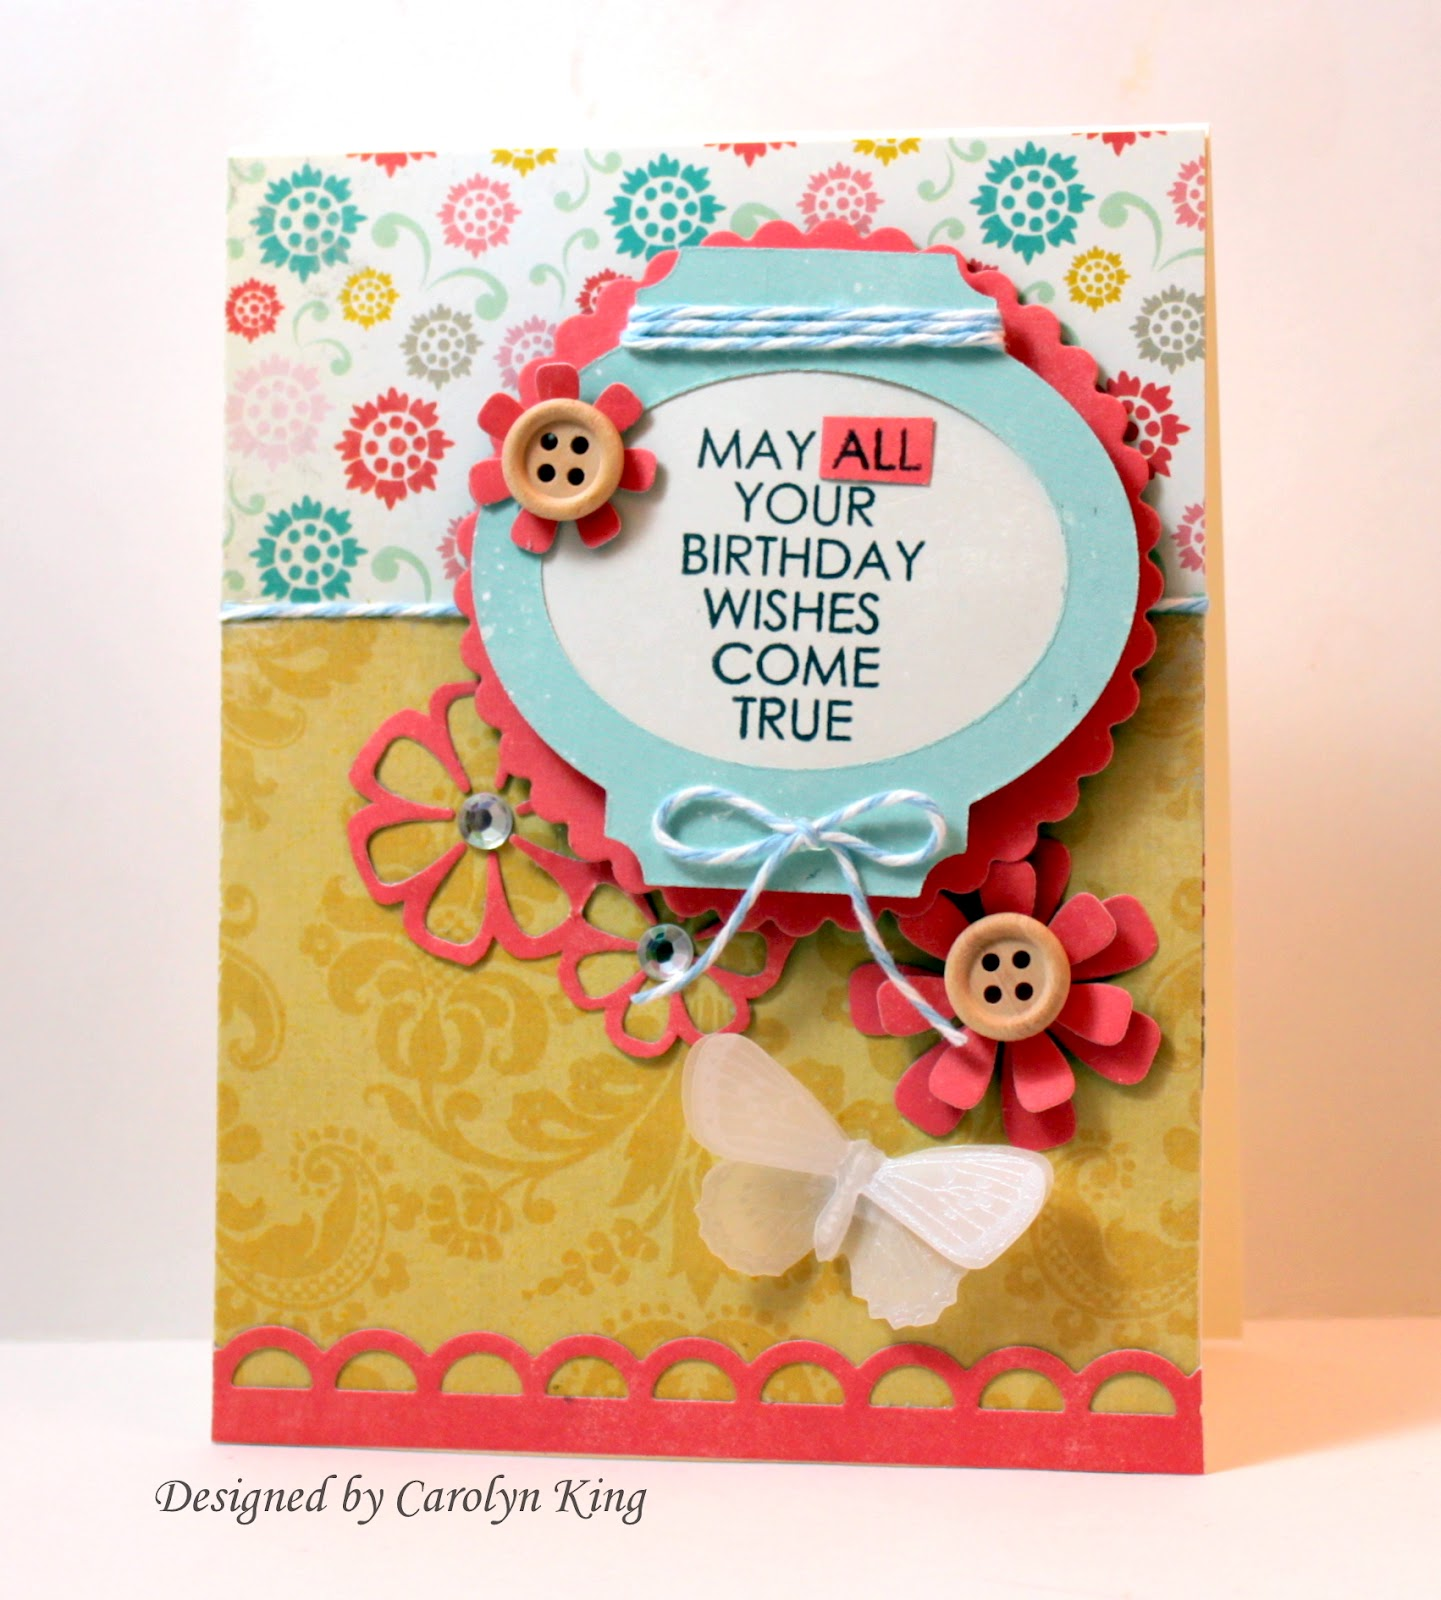 Happy birthday sister in law birthday wishes for sister in law birthday wishes kristyandbryce Choice Image